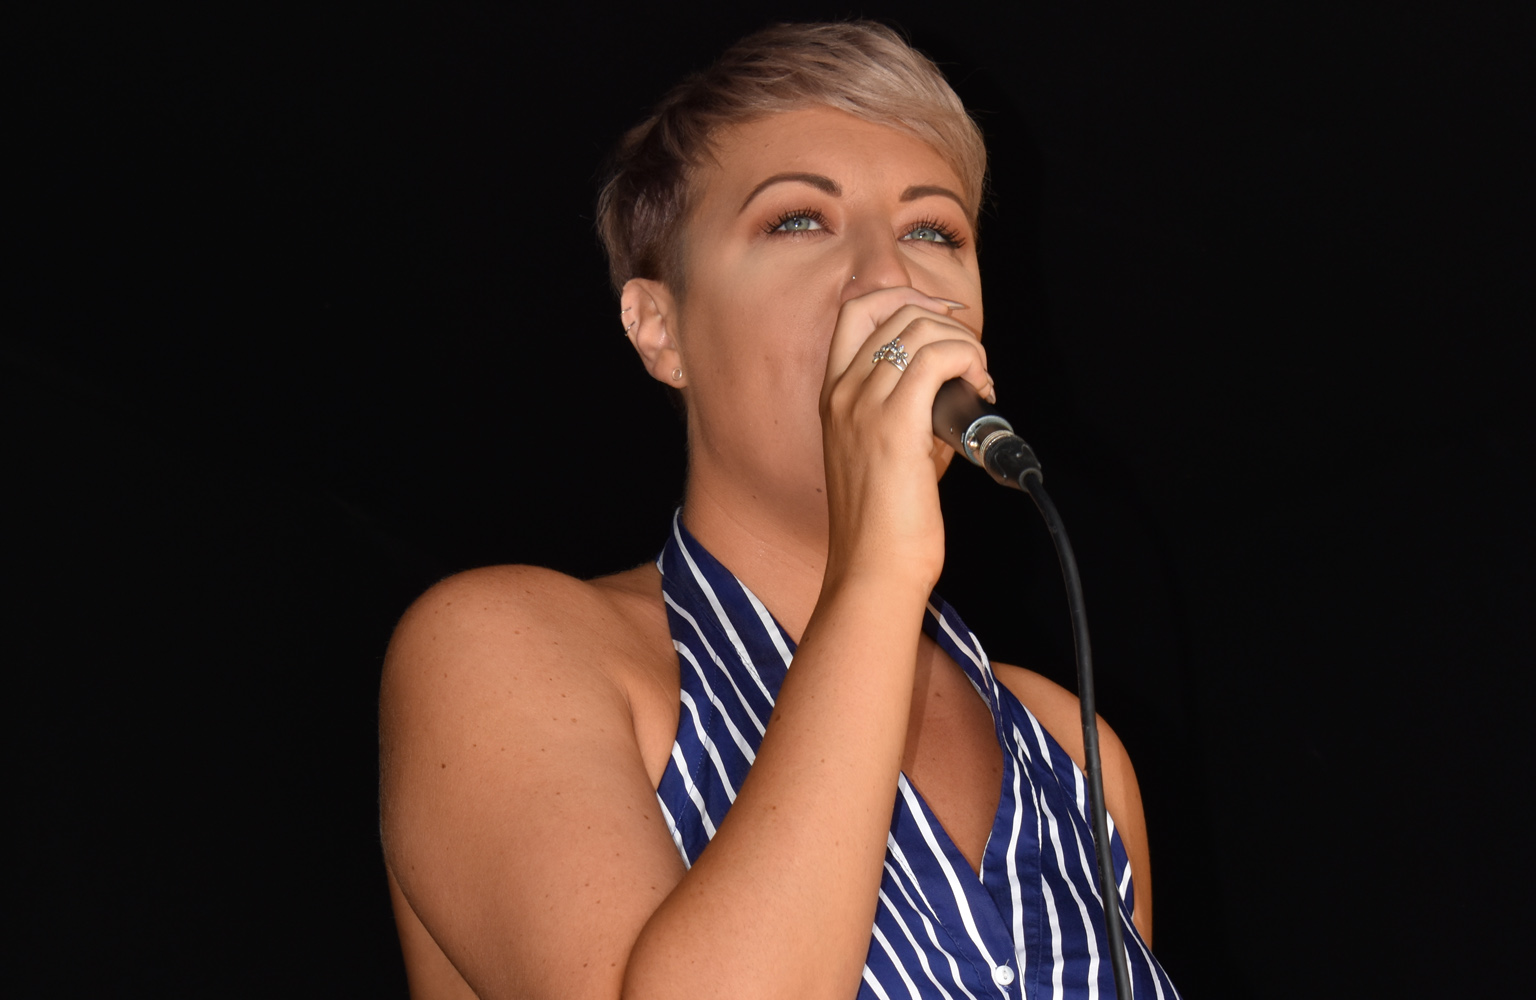 Meet Roxy - professional singer, proud Essex native and Potters' resident vocalist